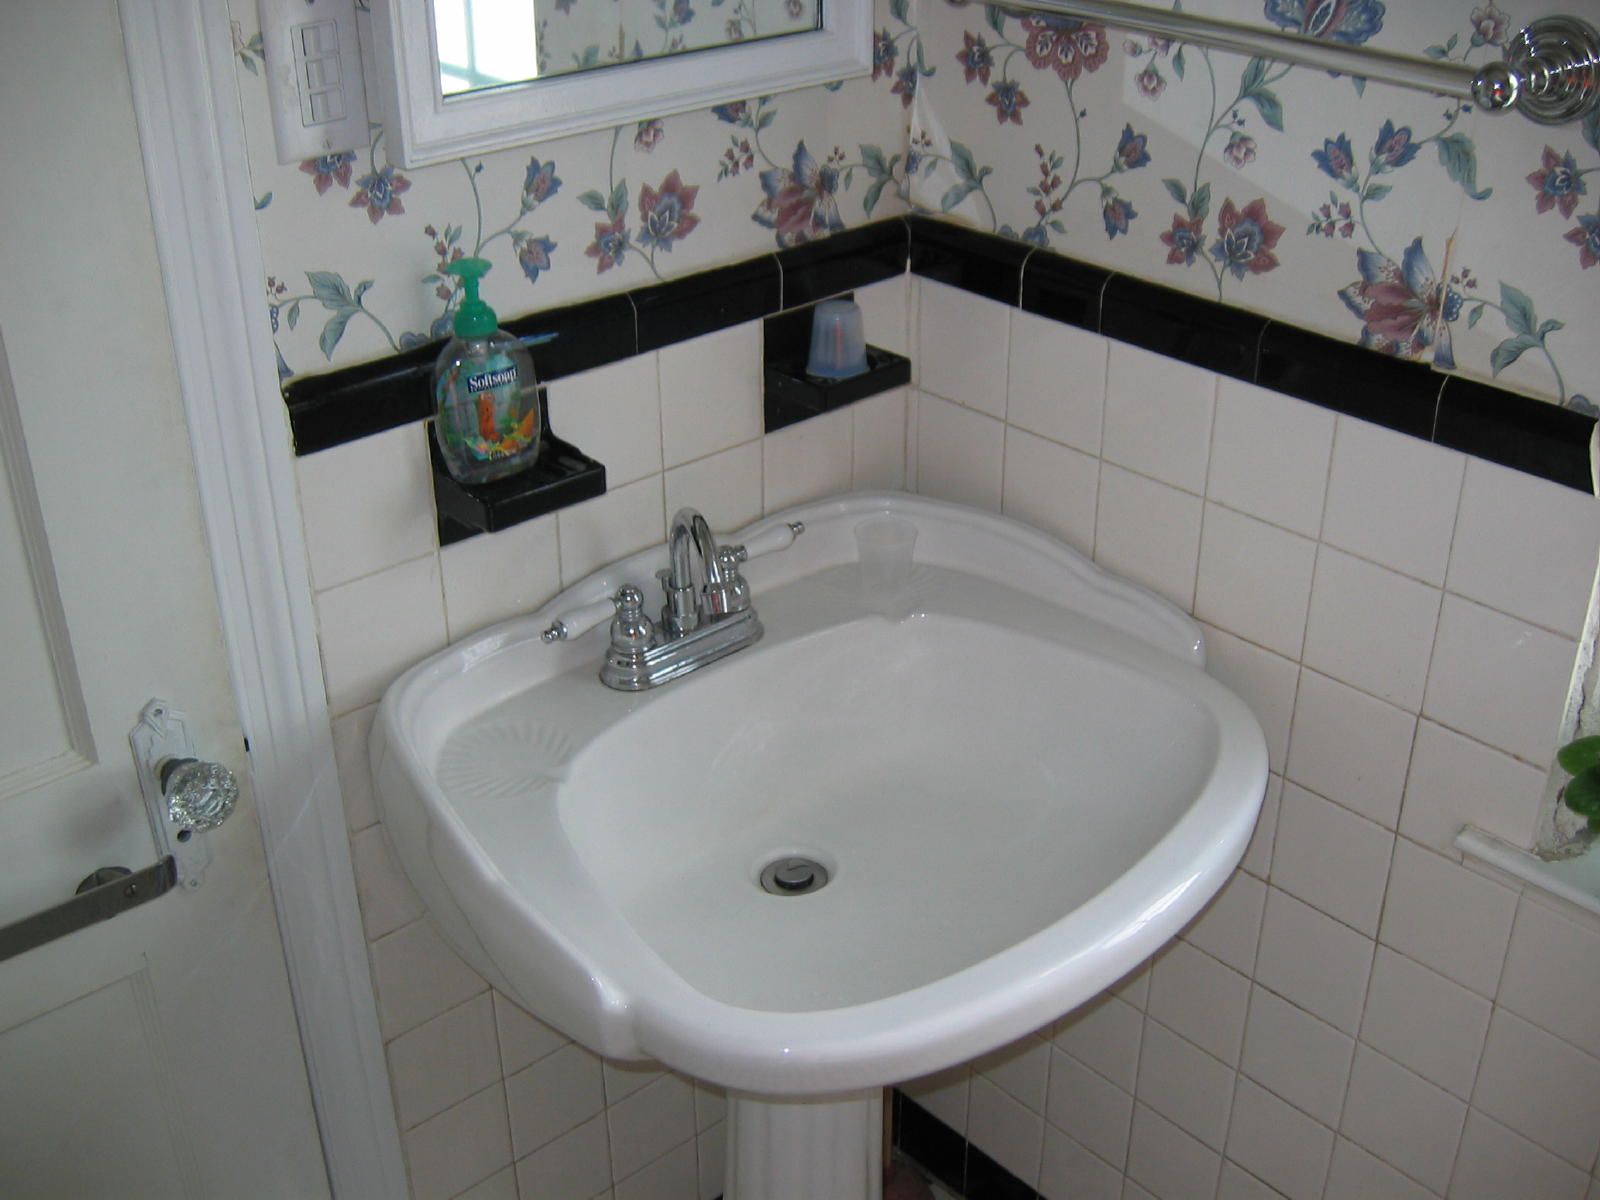 Bathroom Remodel Tub Removal : Cast iron tub removal page remodeling contractor talk